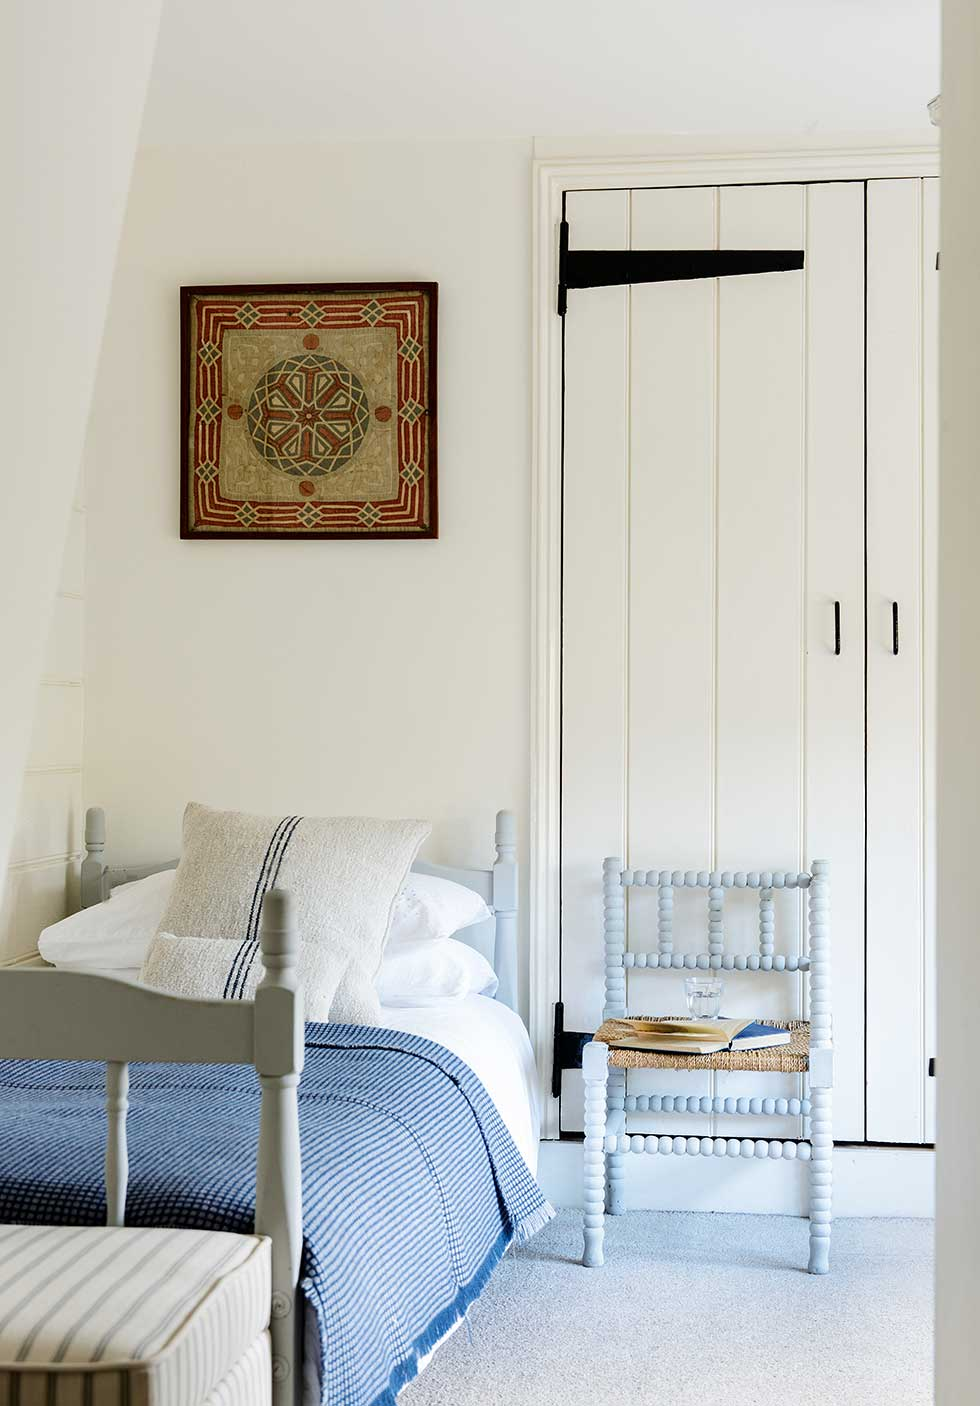 Lewis-powell-cottage-spare-room-blue